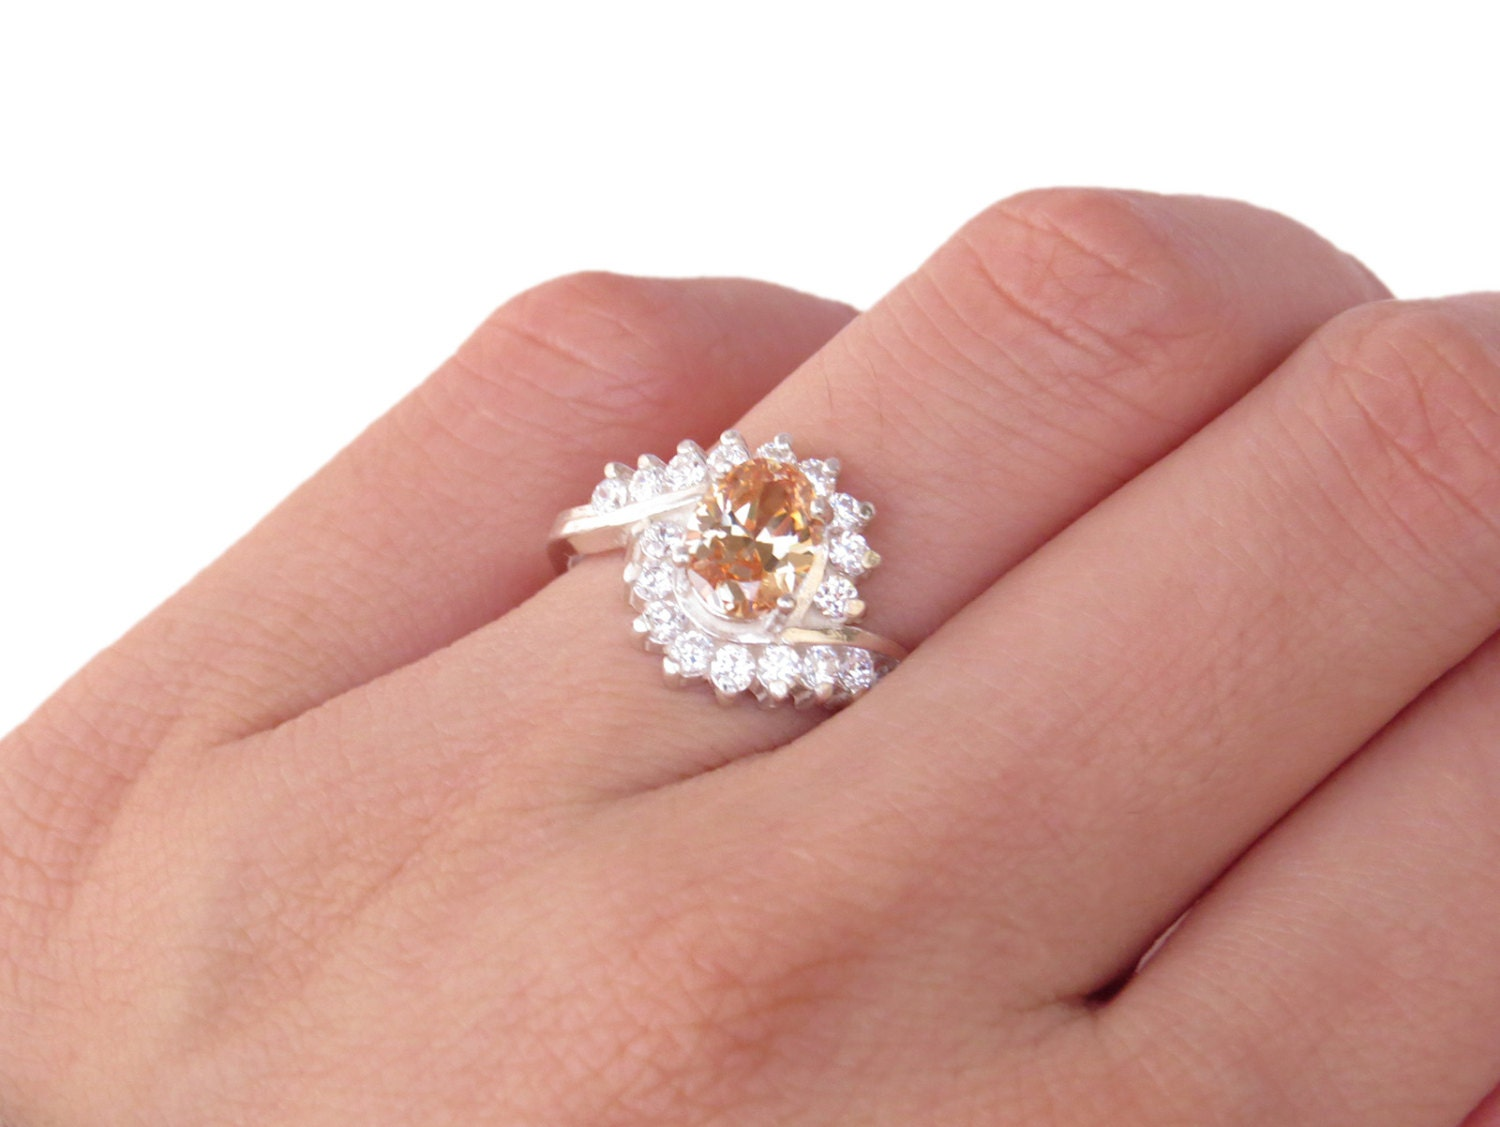 2 Carat Oval Halo Engagement Ring Champagne by TigerGemstones